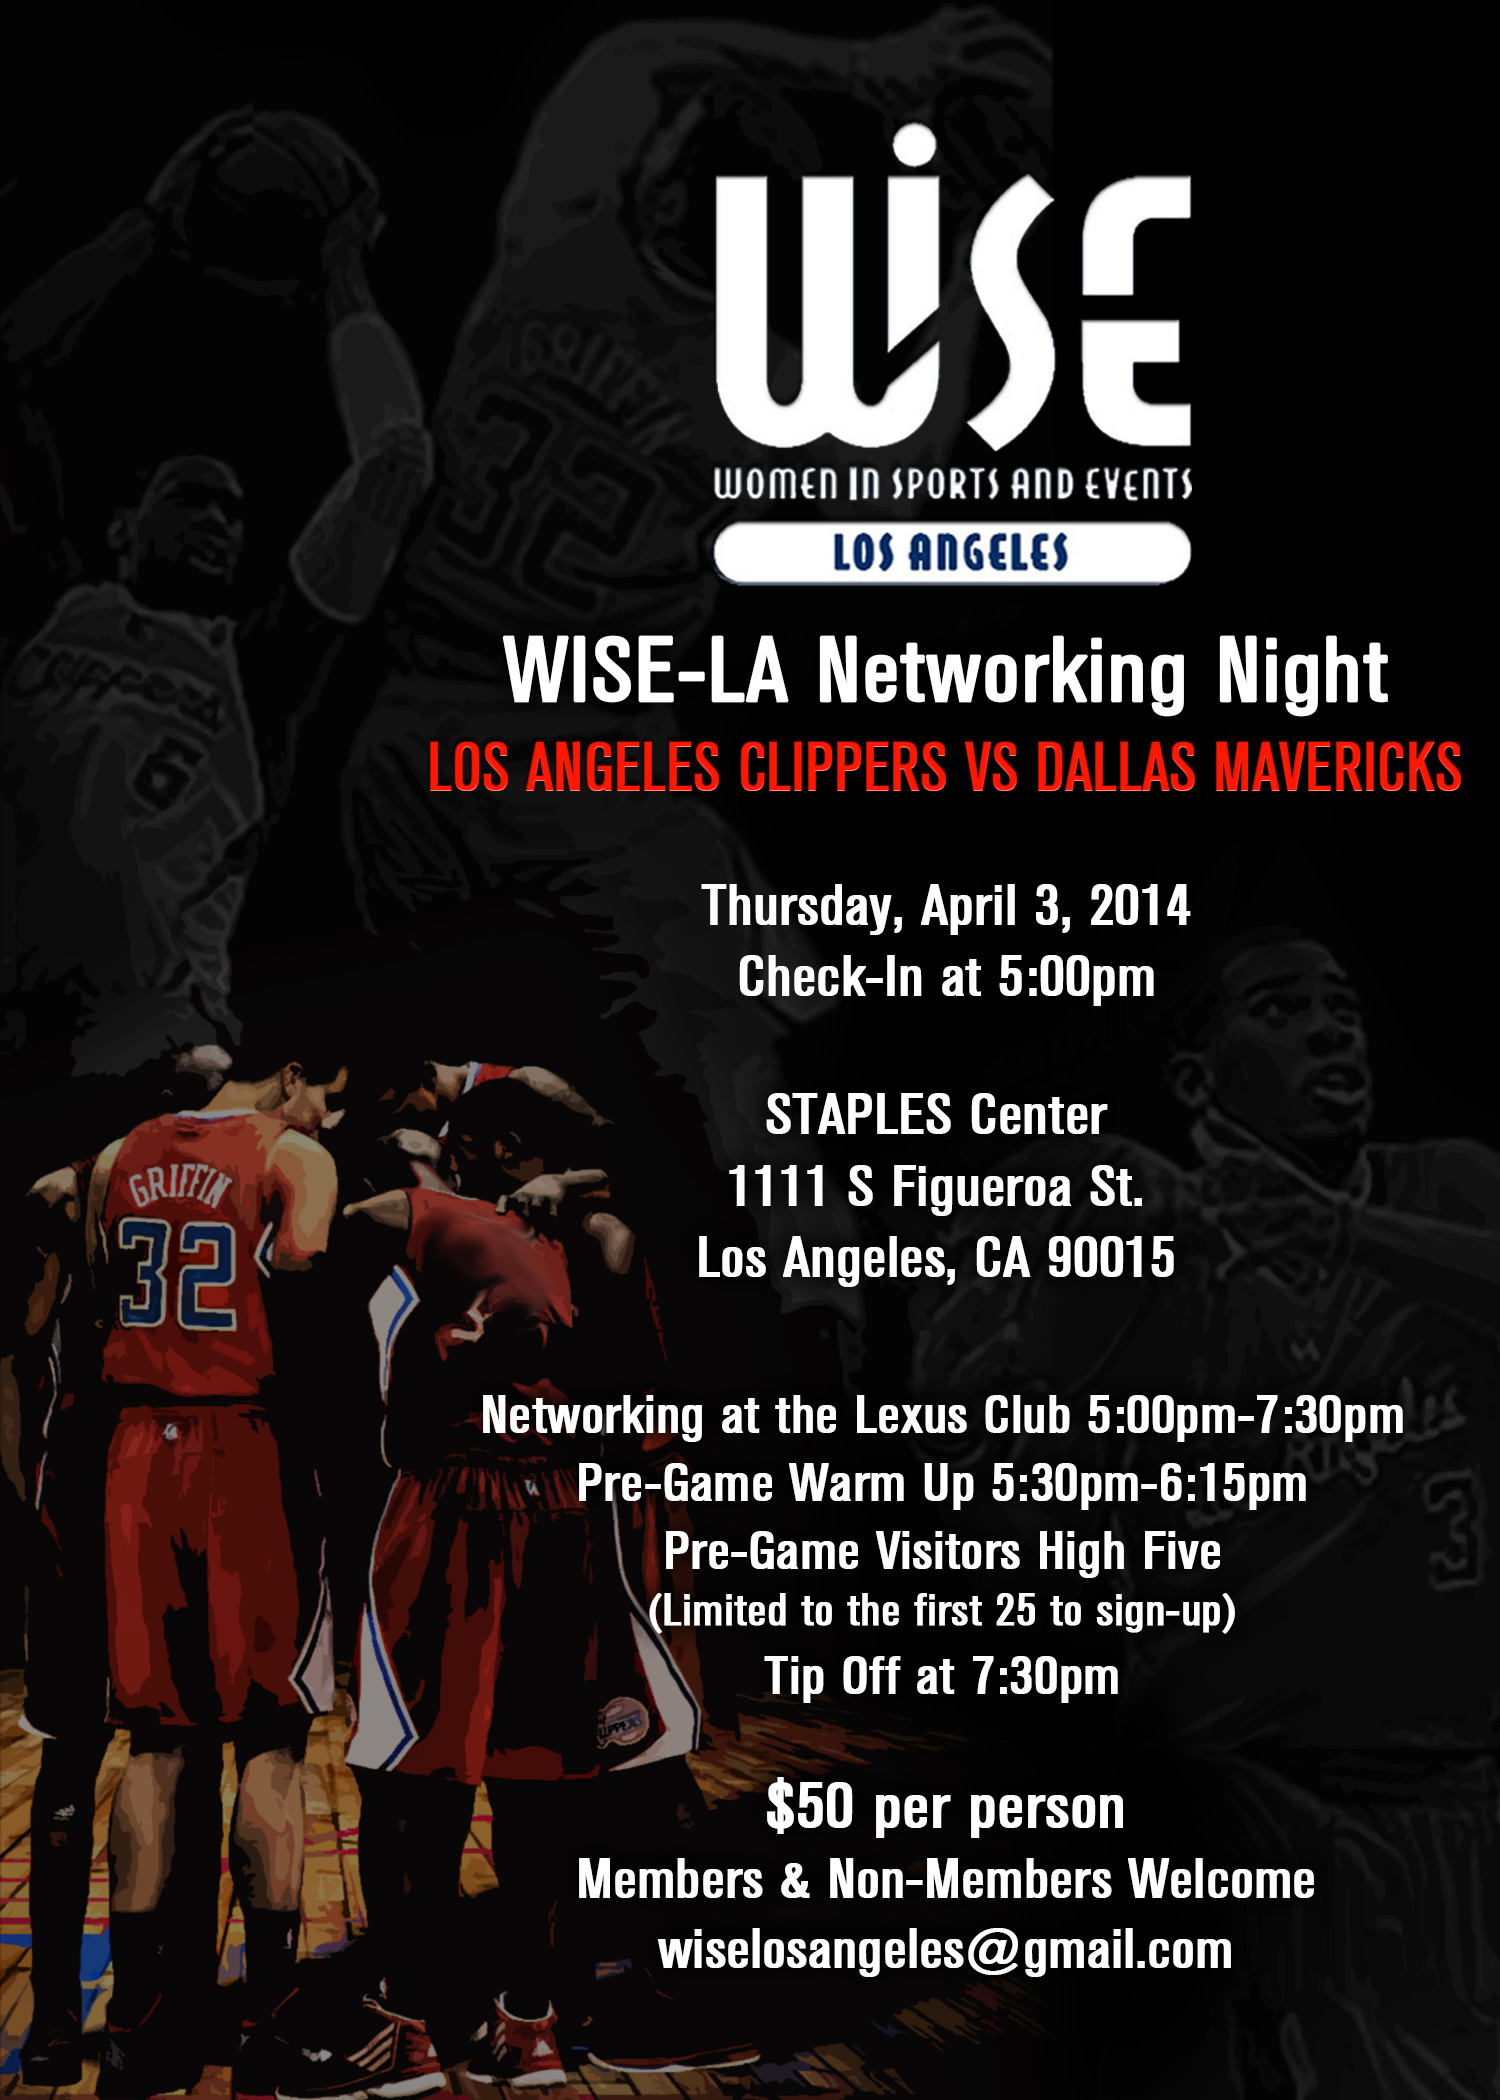 Clippers Vs Mavericks Networking Night